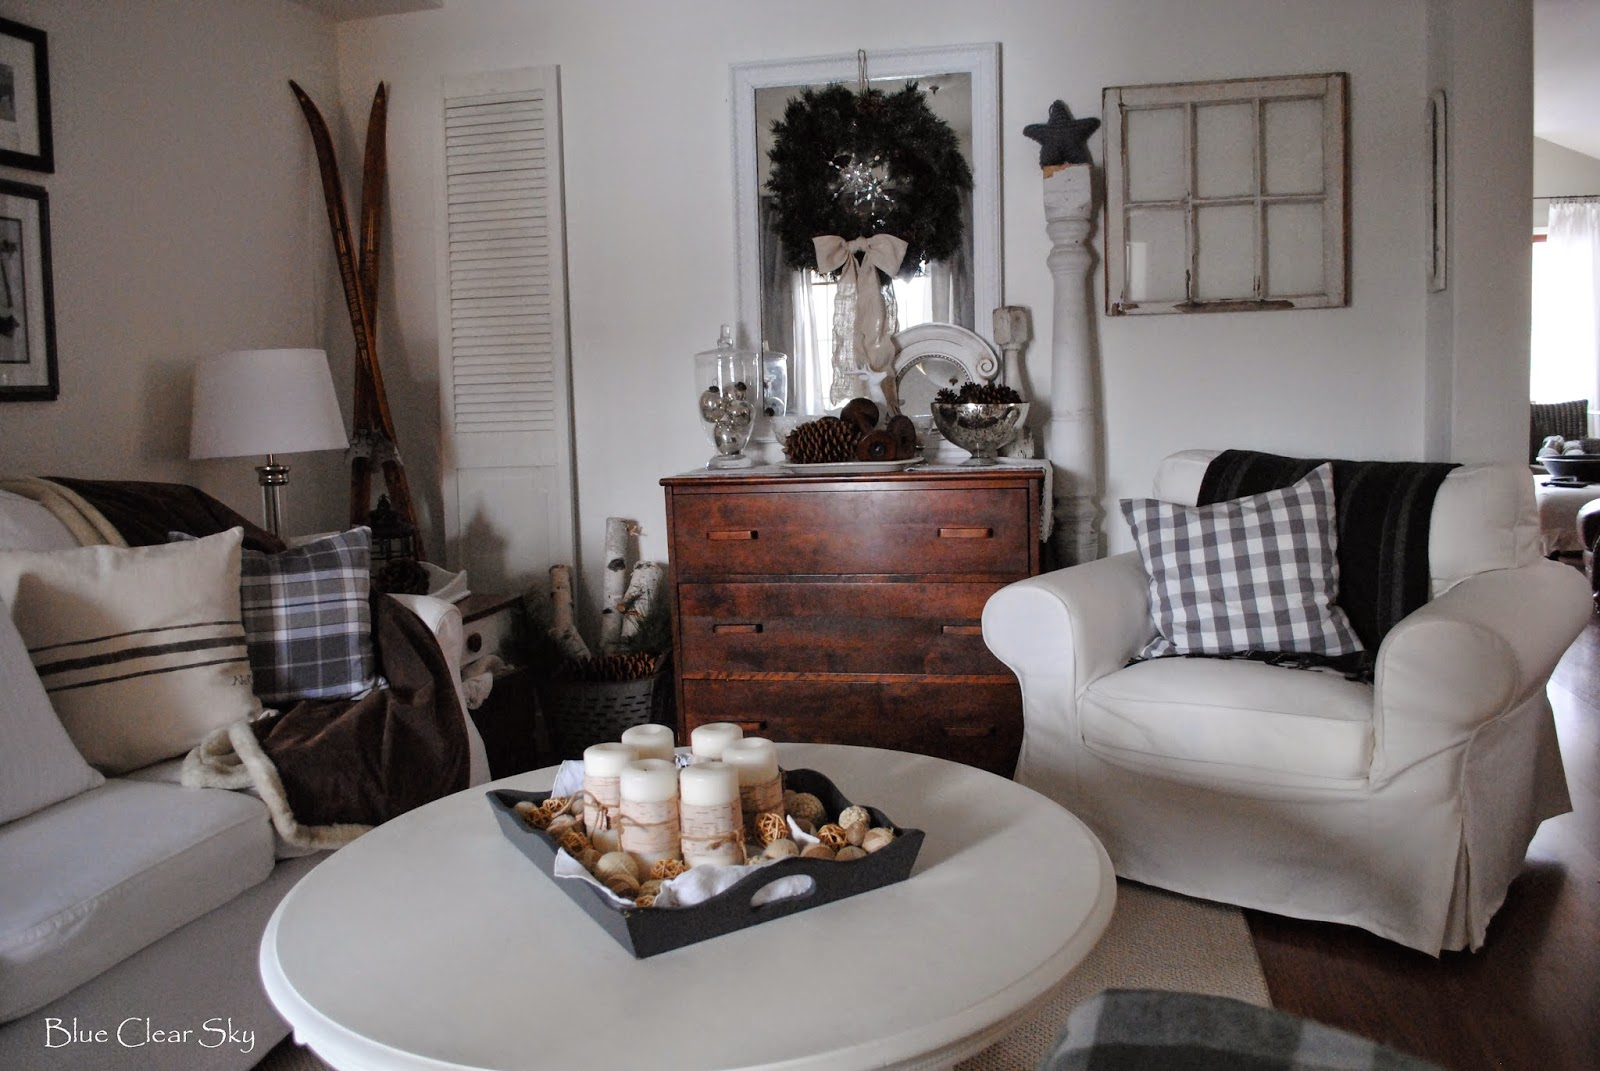 Rustic Maple: Our Winter Living Room